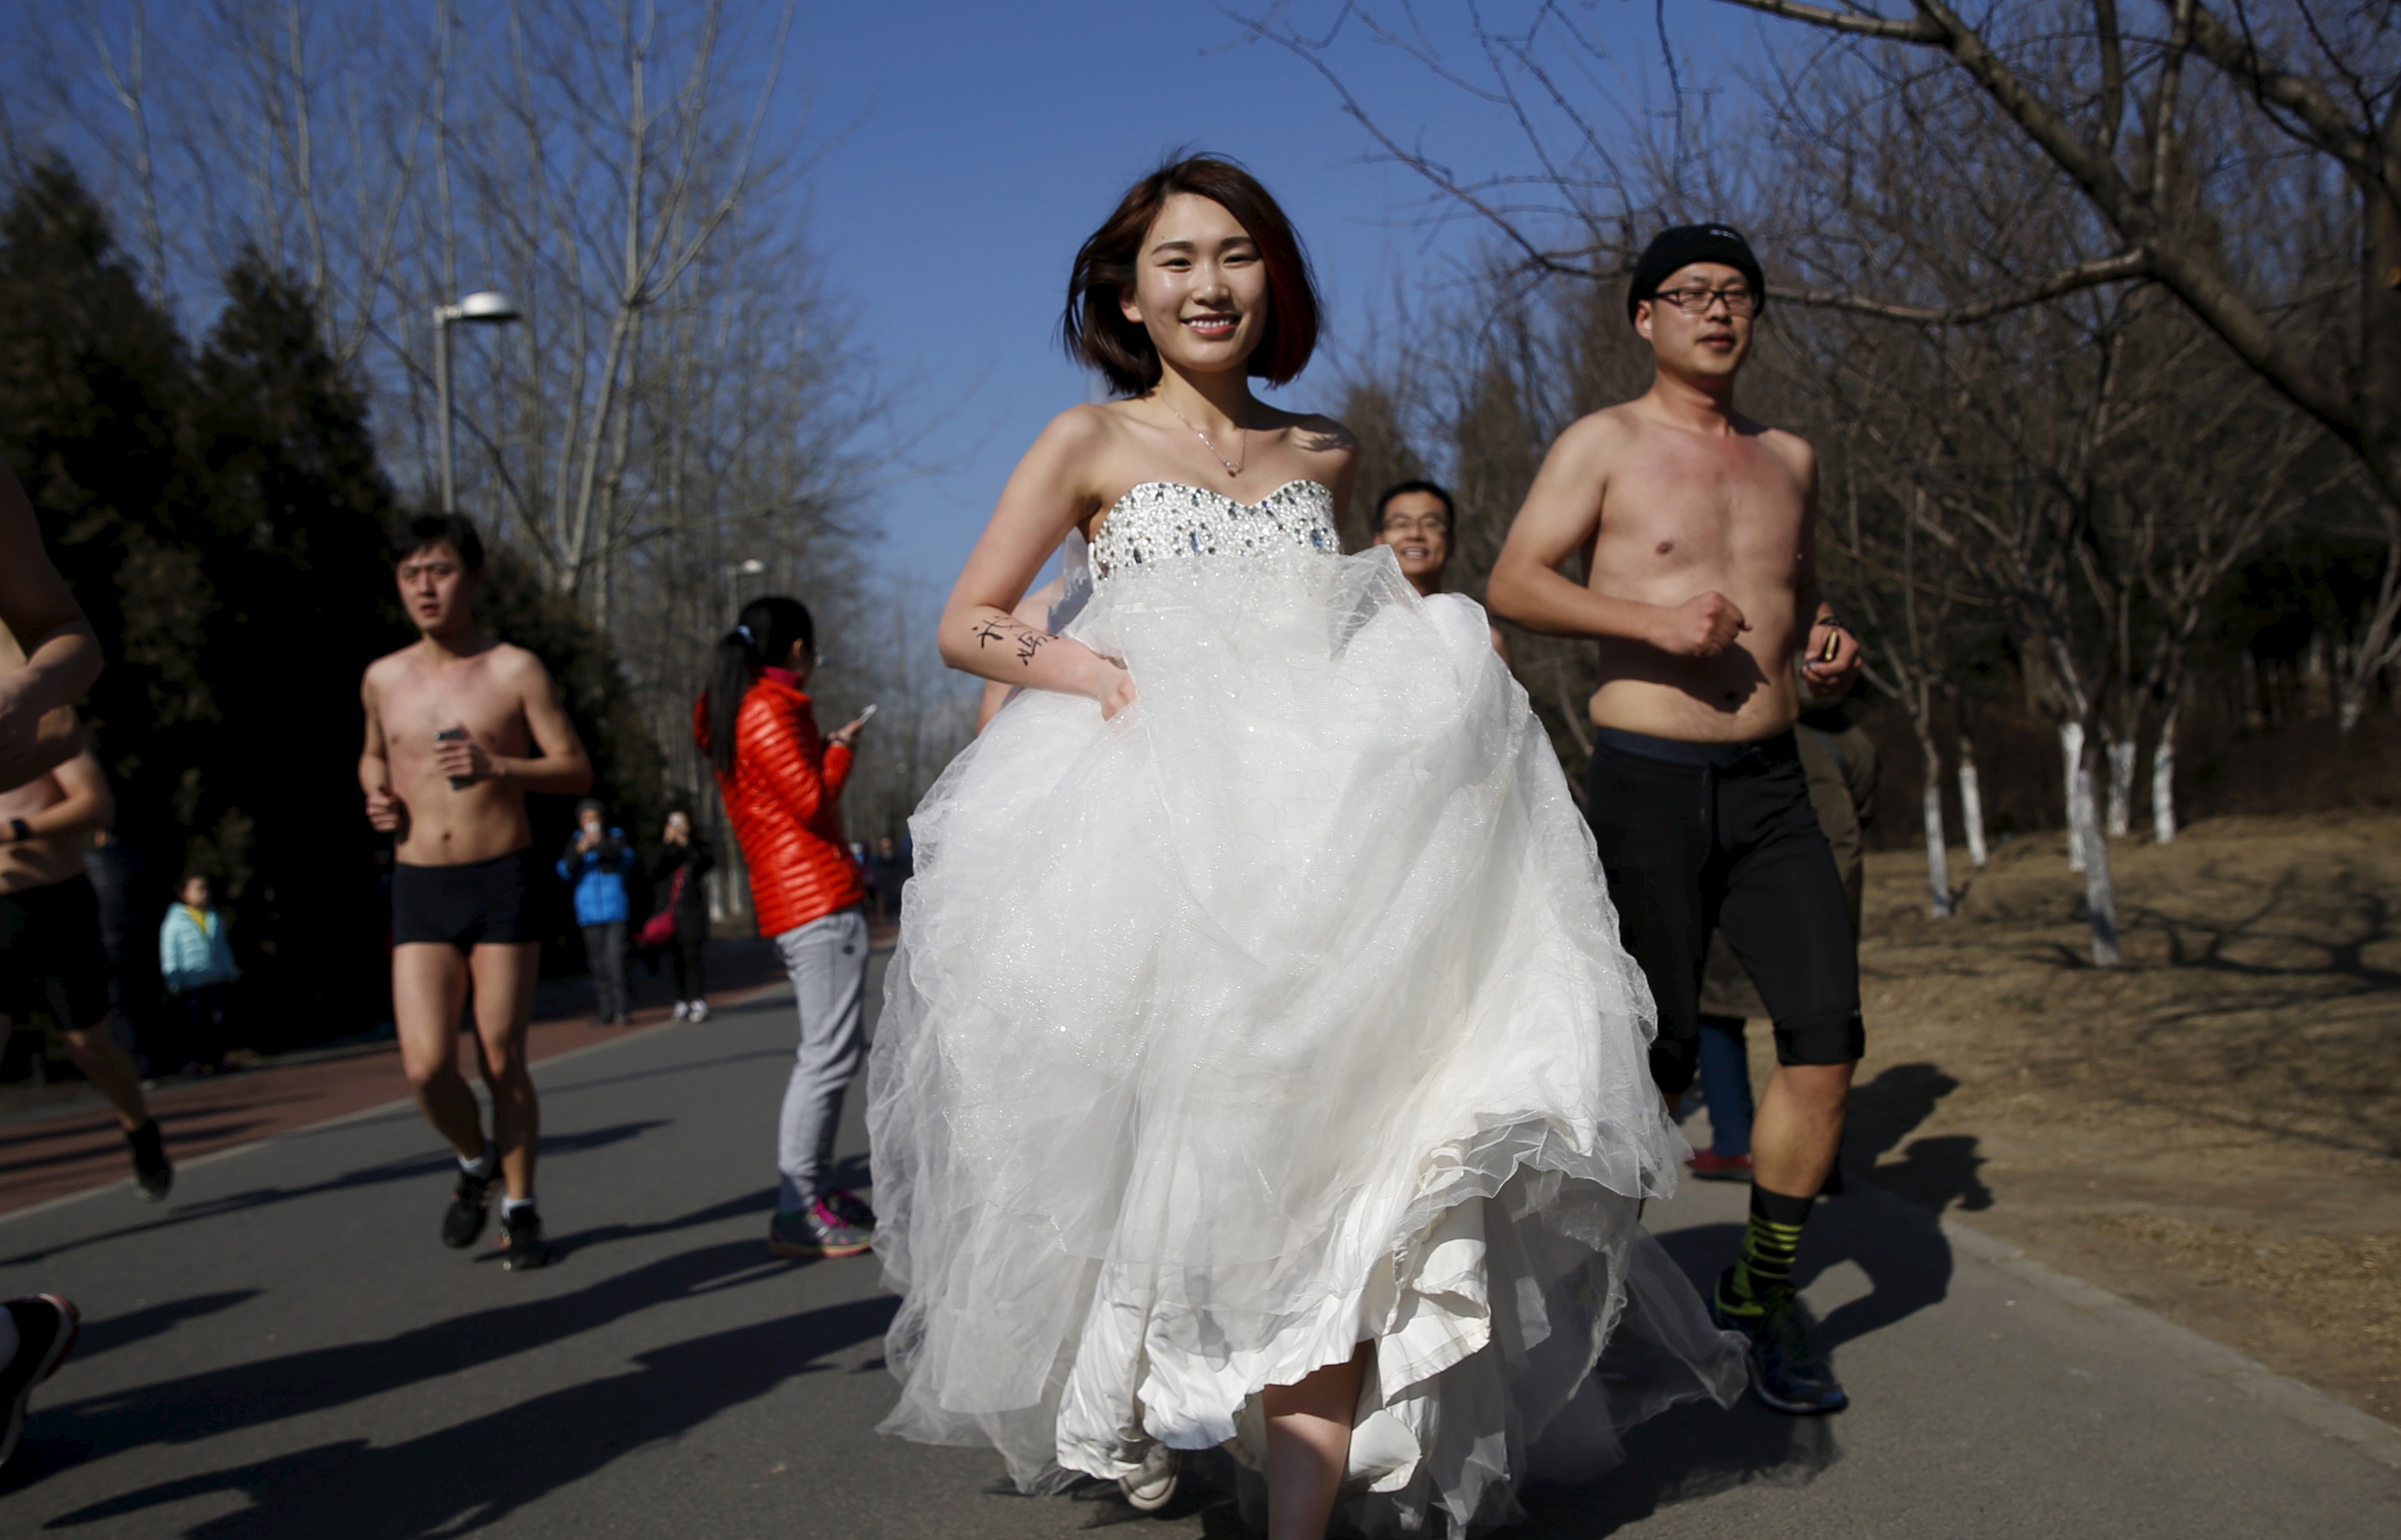 Chinese dating culture divorced women